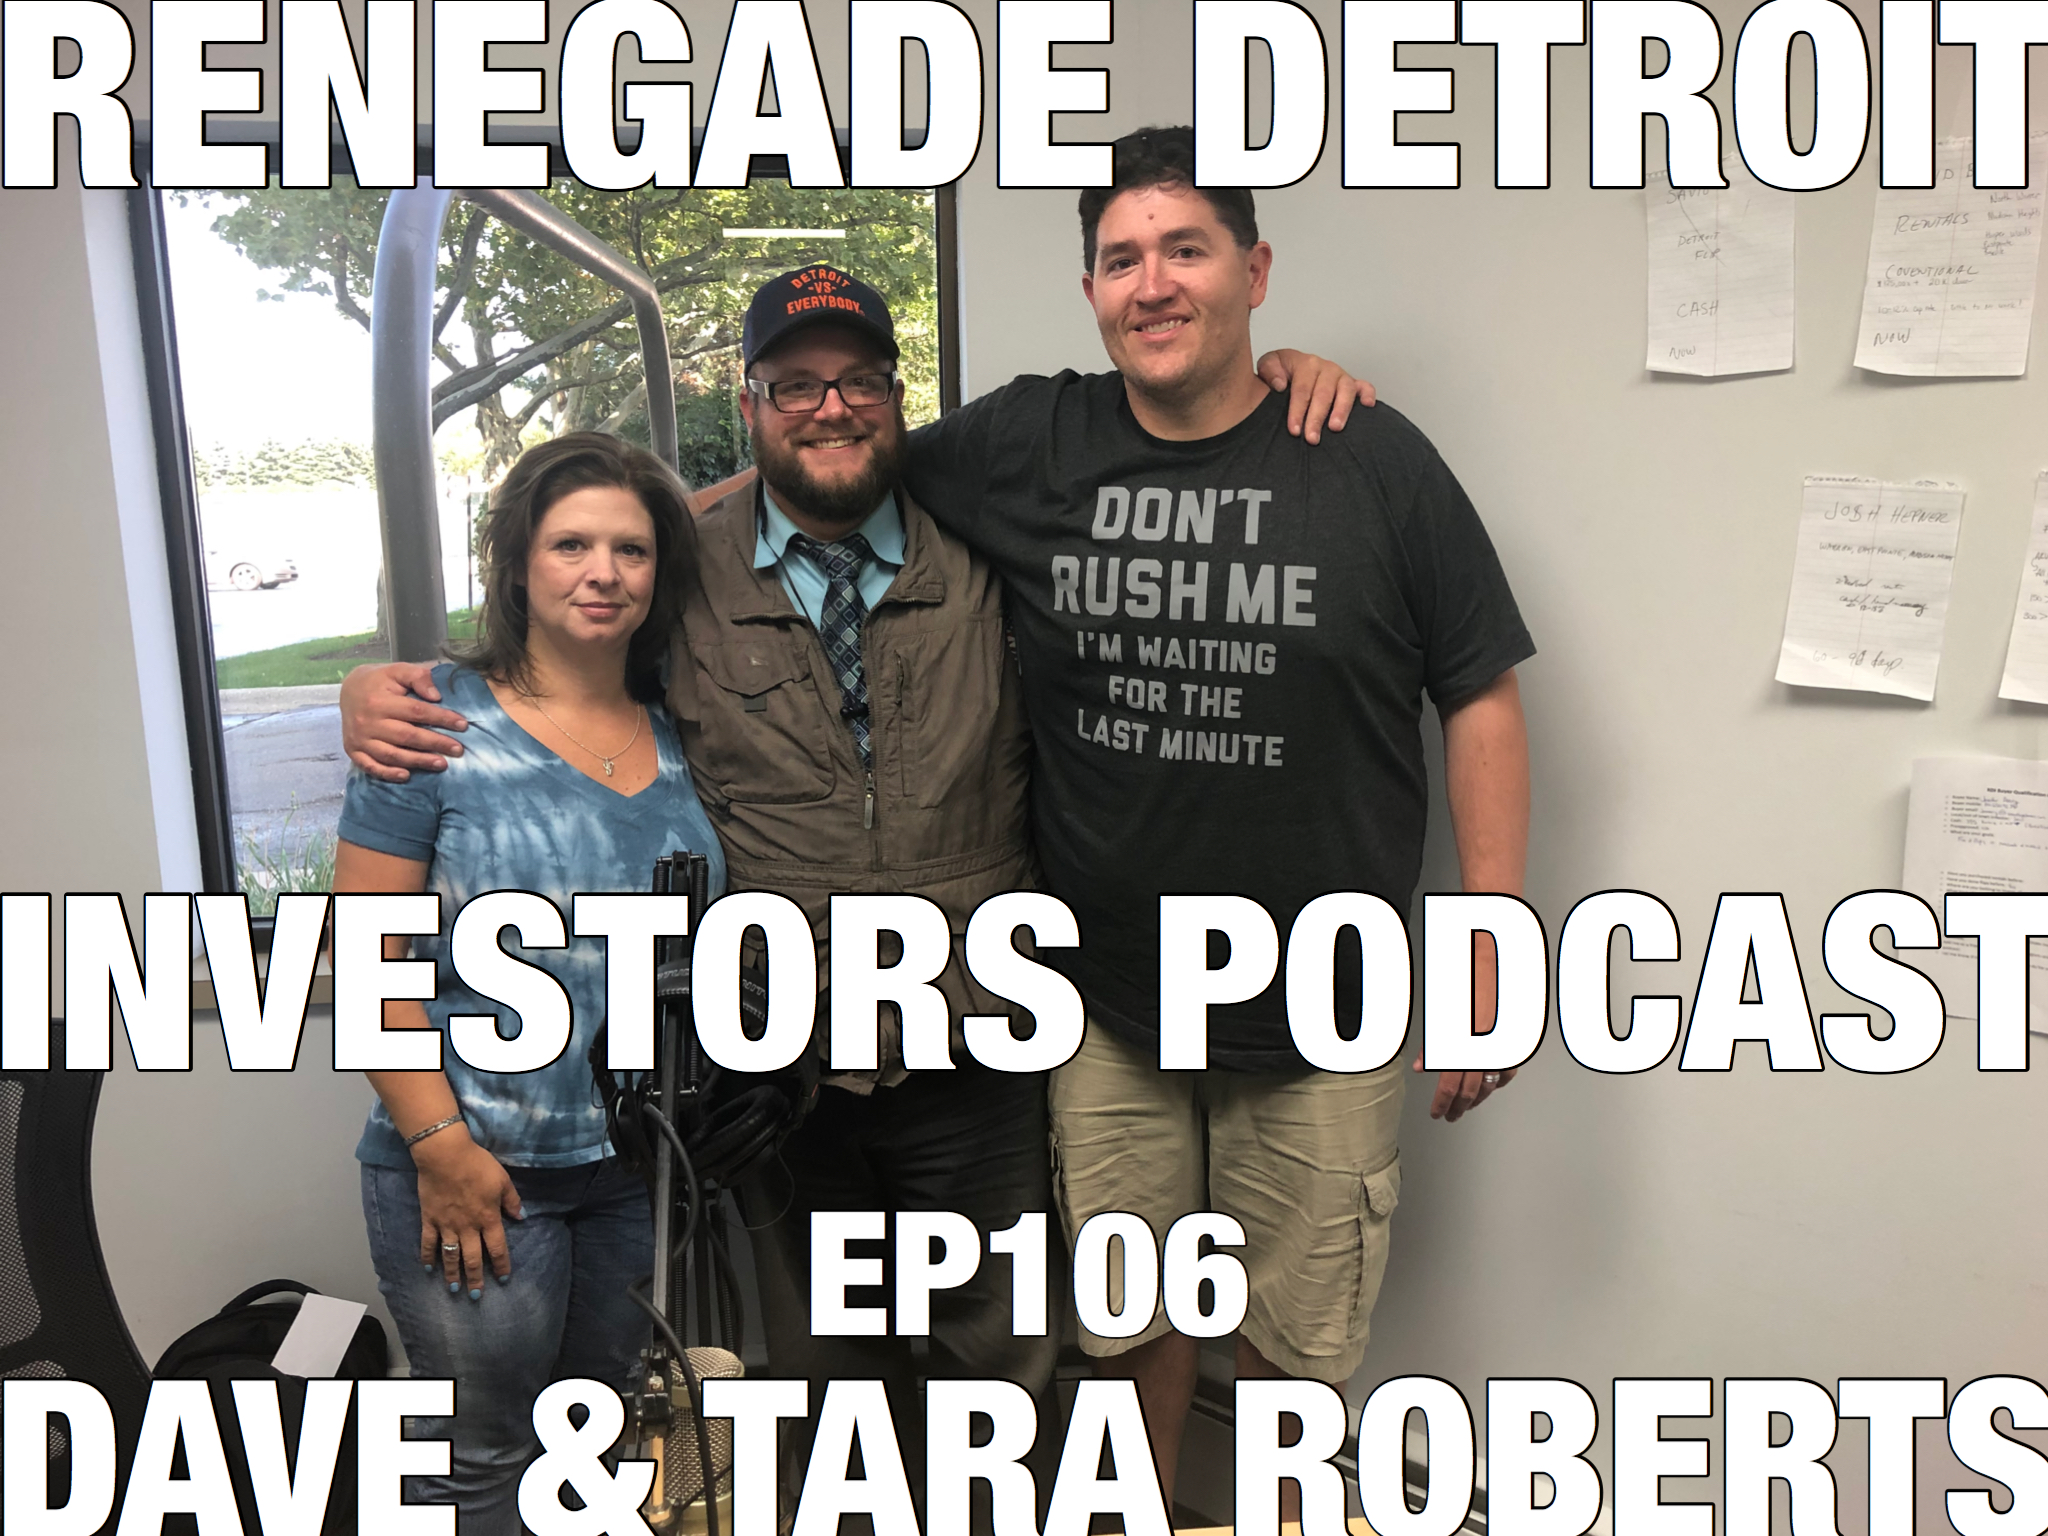 RDI Podcast Ep 106: Dave and Tara Roberts